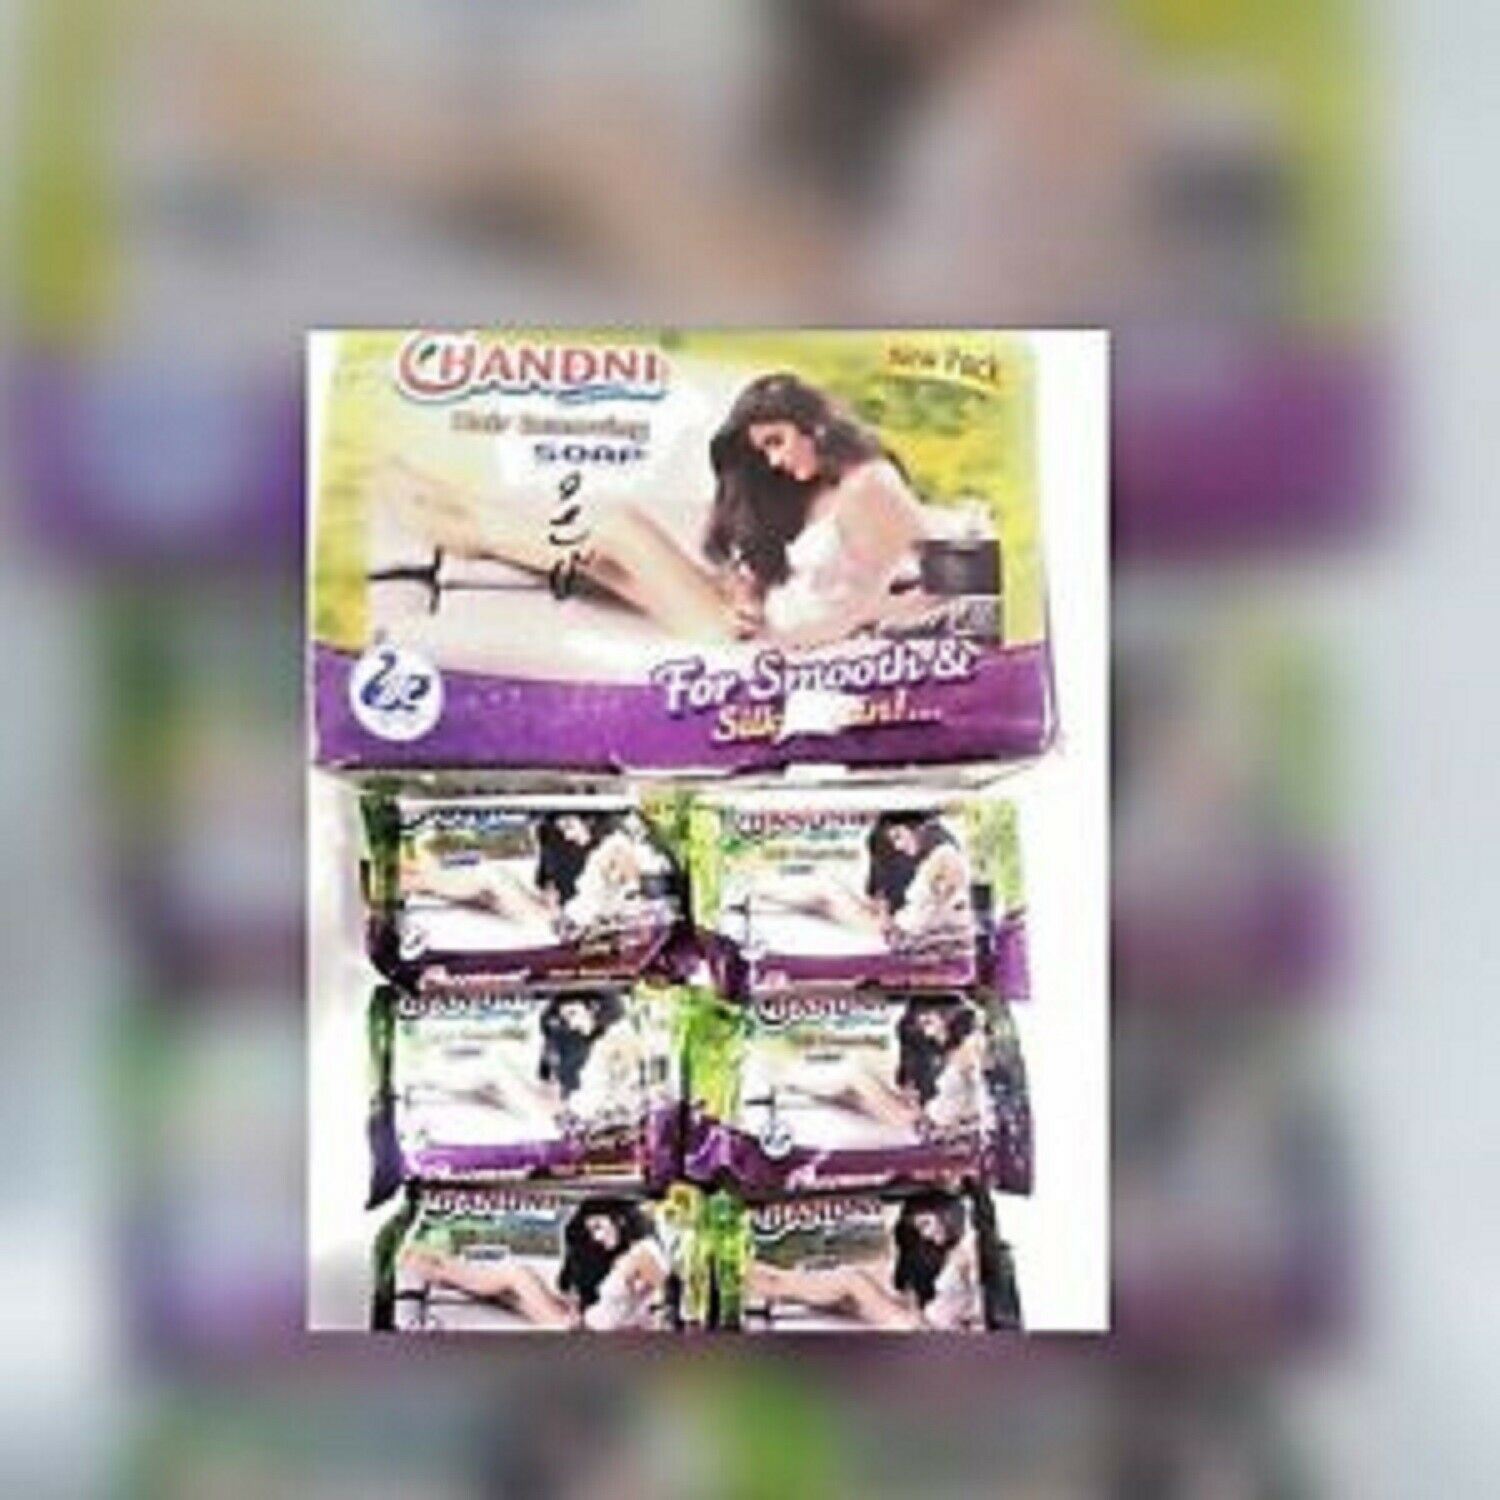 12 piece X CHANDNI HAIR REMOVING SOAP 40 gm FOR SMOOTH & SILKY SKIN